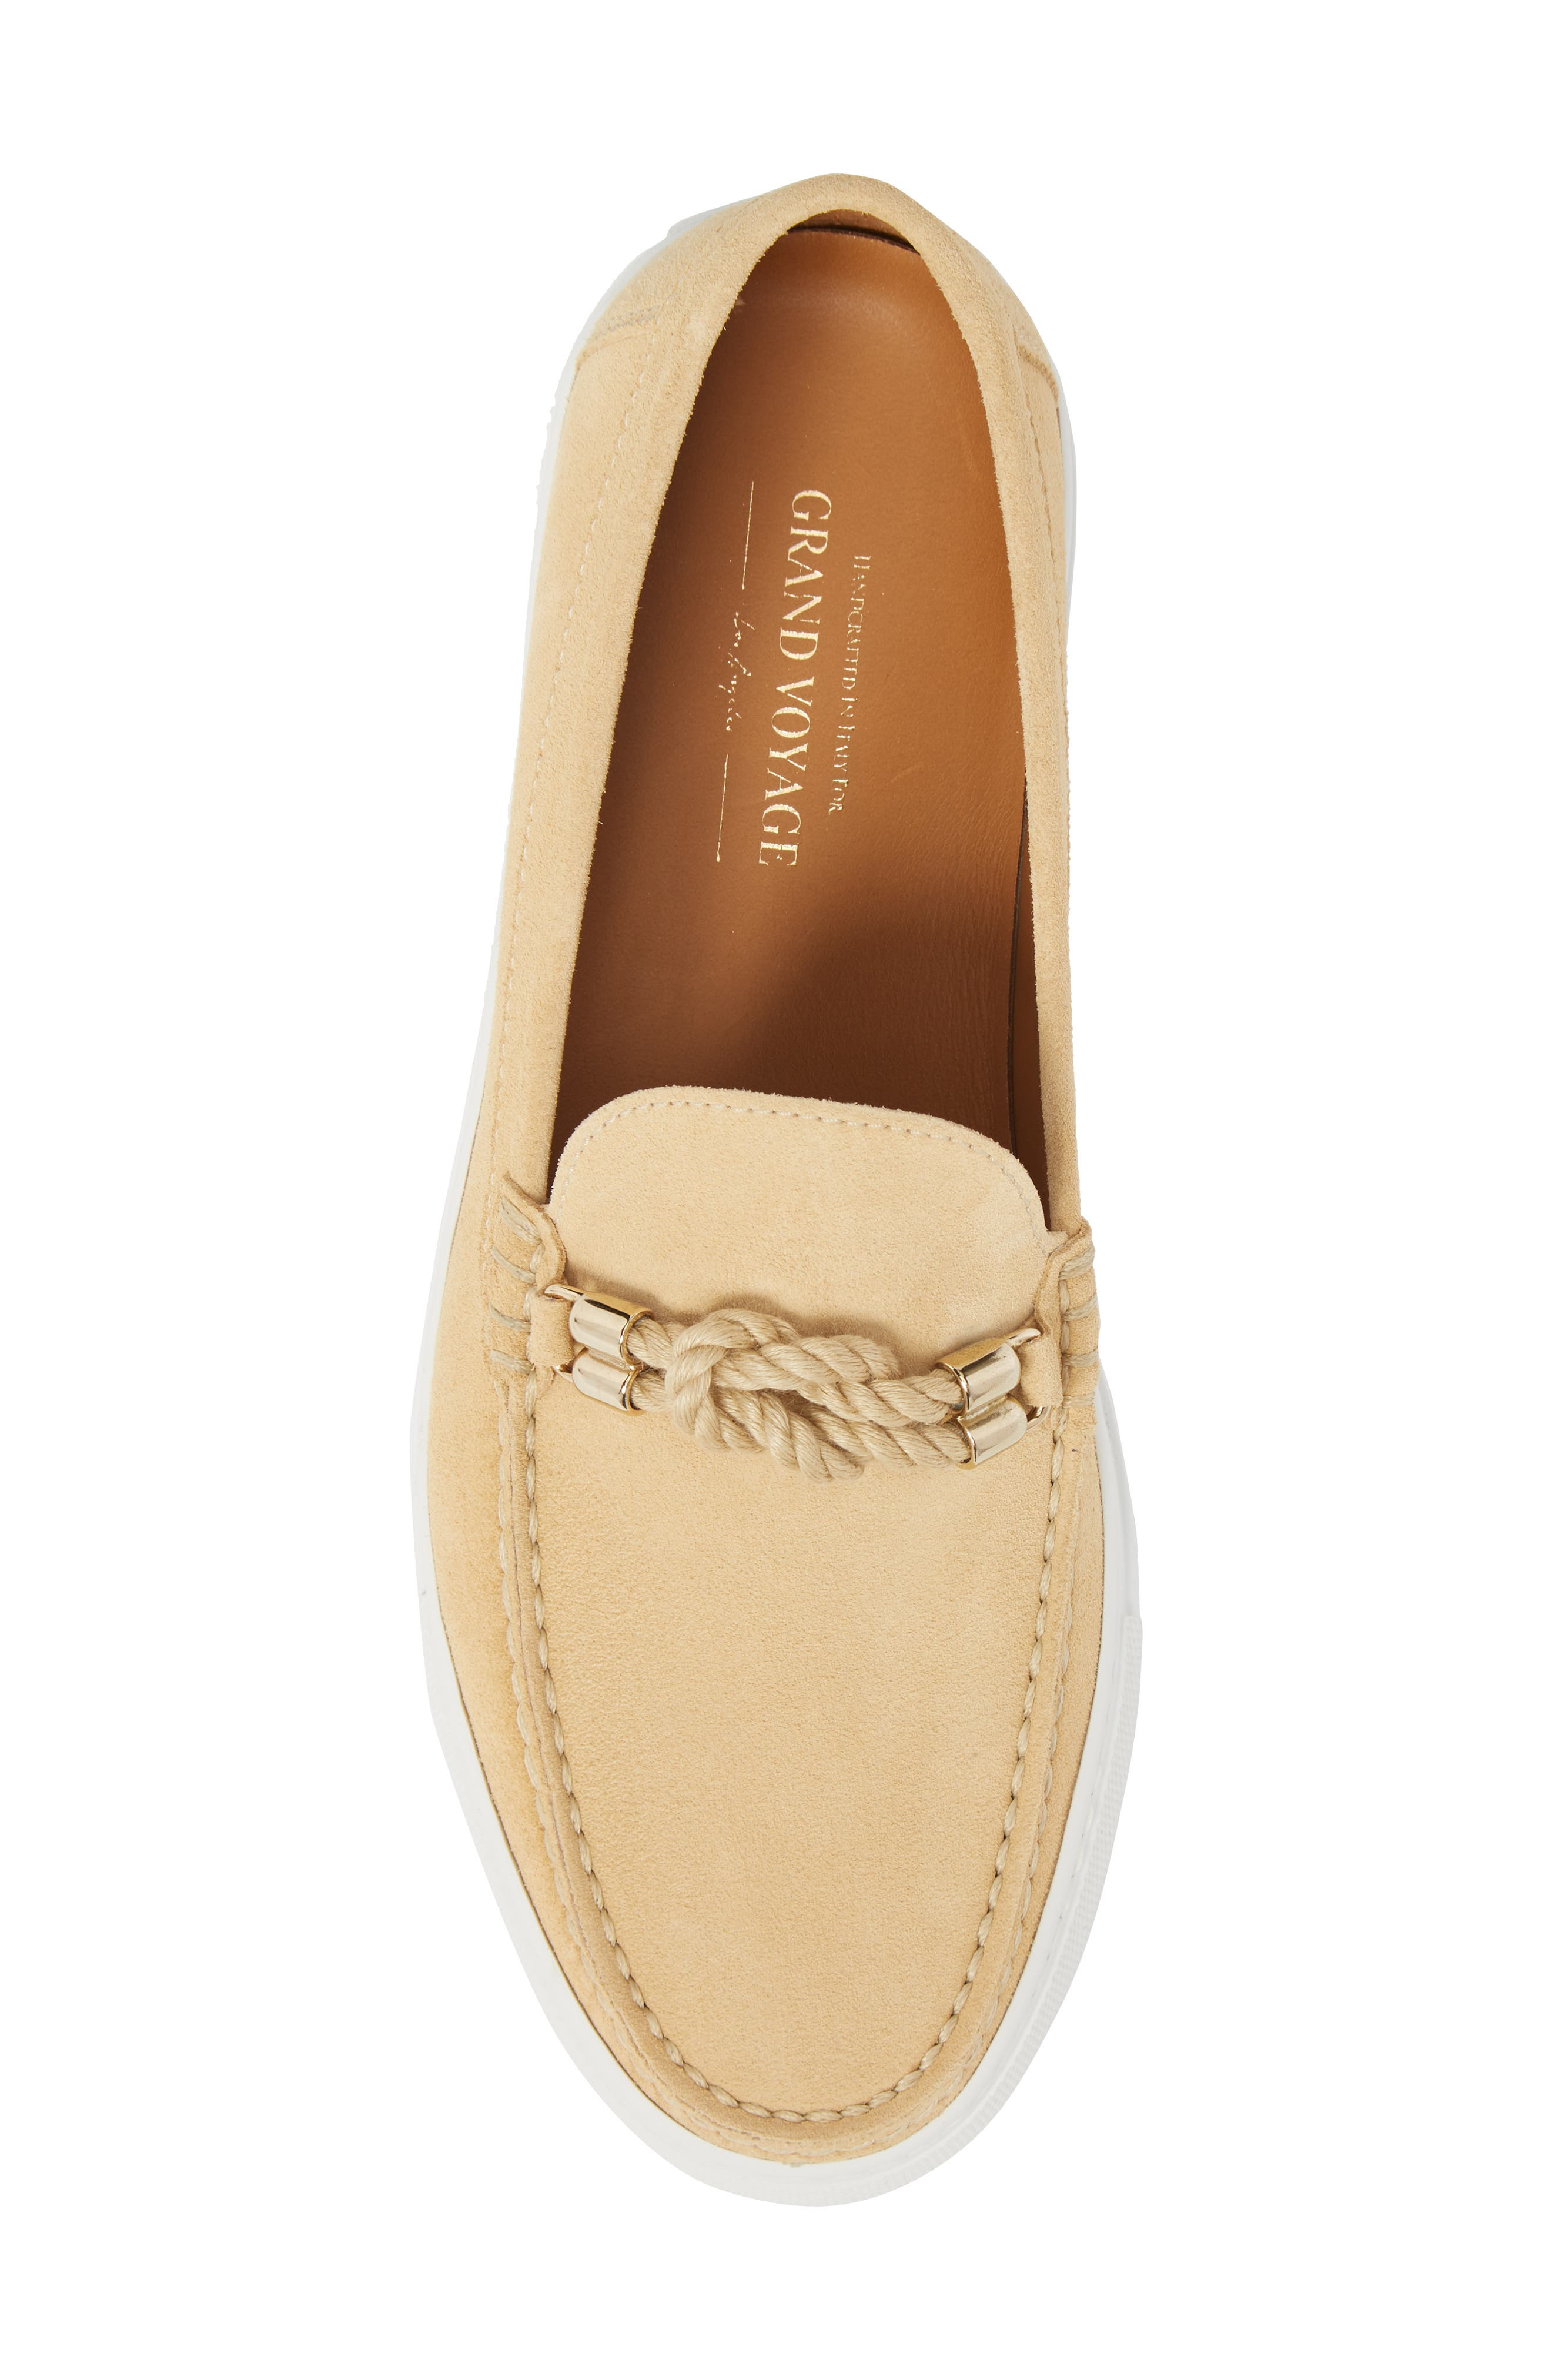 Bitton Square Knot Loafer,                             Alternate thumbnail 5, color,                             BEIGE SUEDE